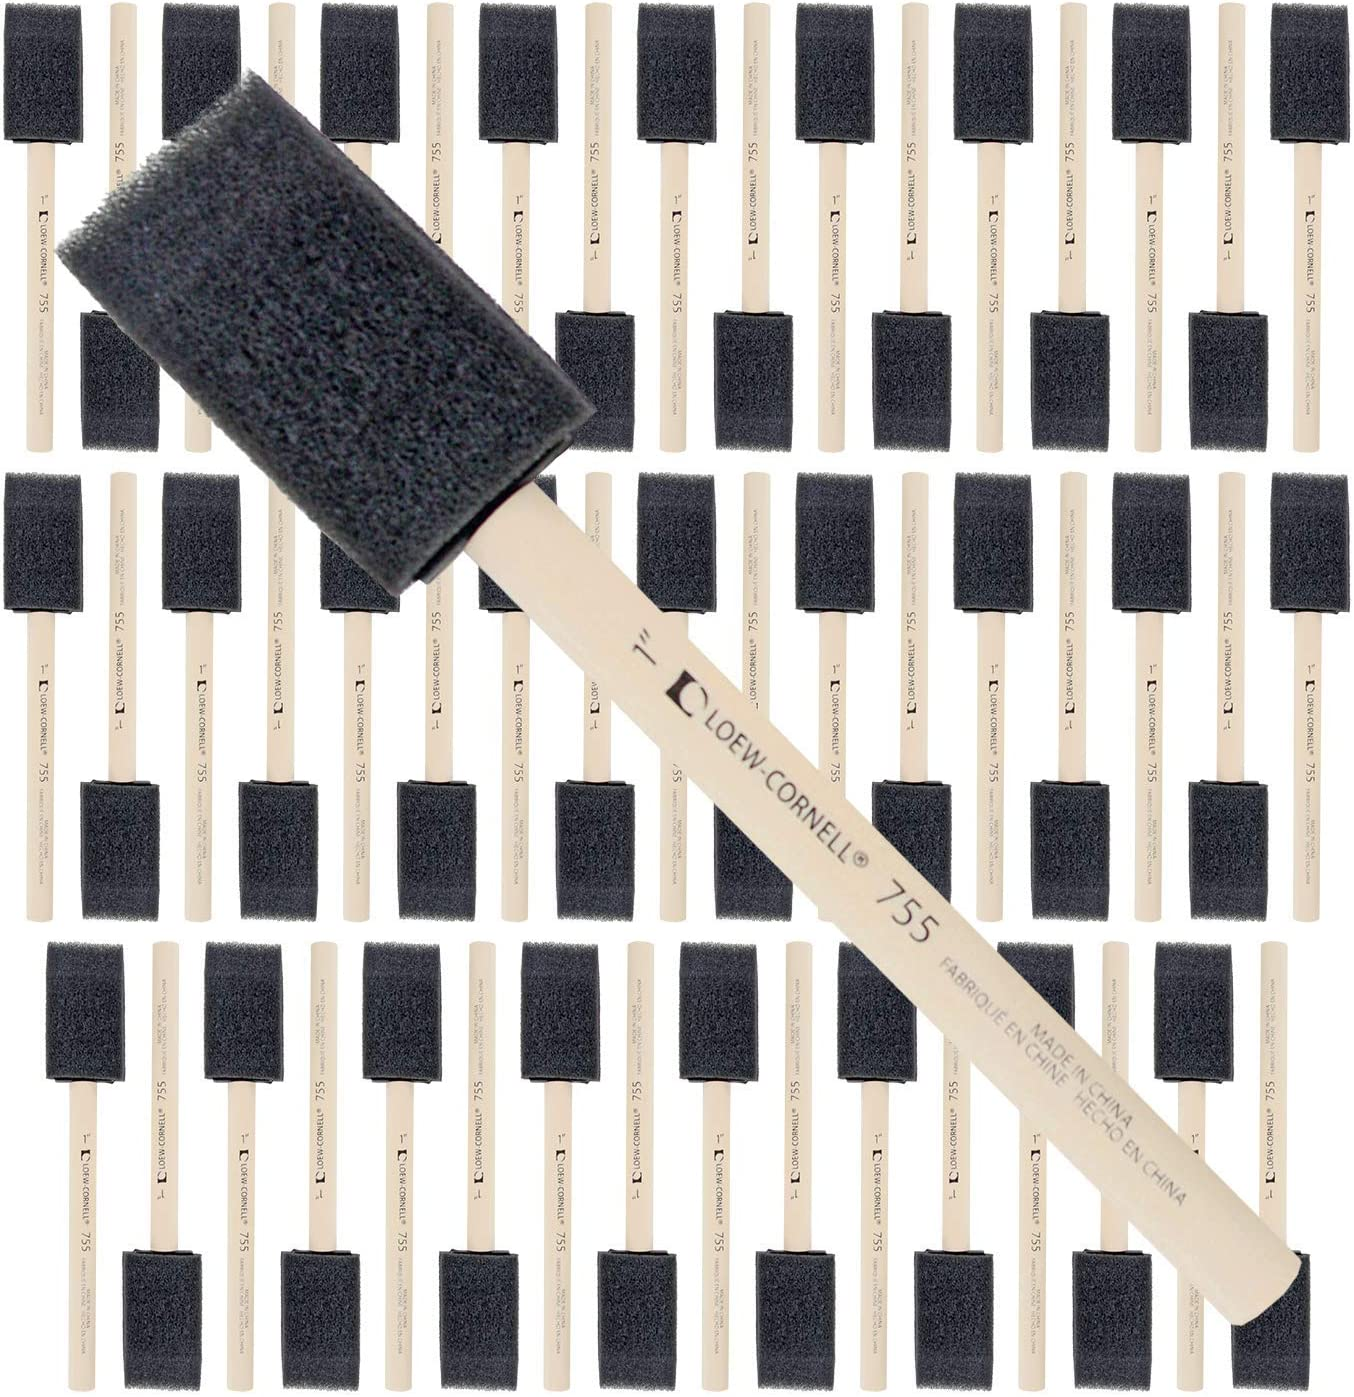 Foam Brush Foam Paint Brushes Durable and Great for Acrylics Crafts Foam Sponge Wood Handle Paint Brush Set Stains Varnishes